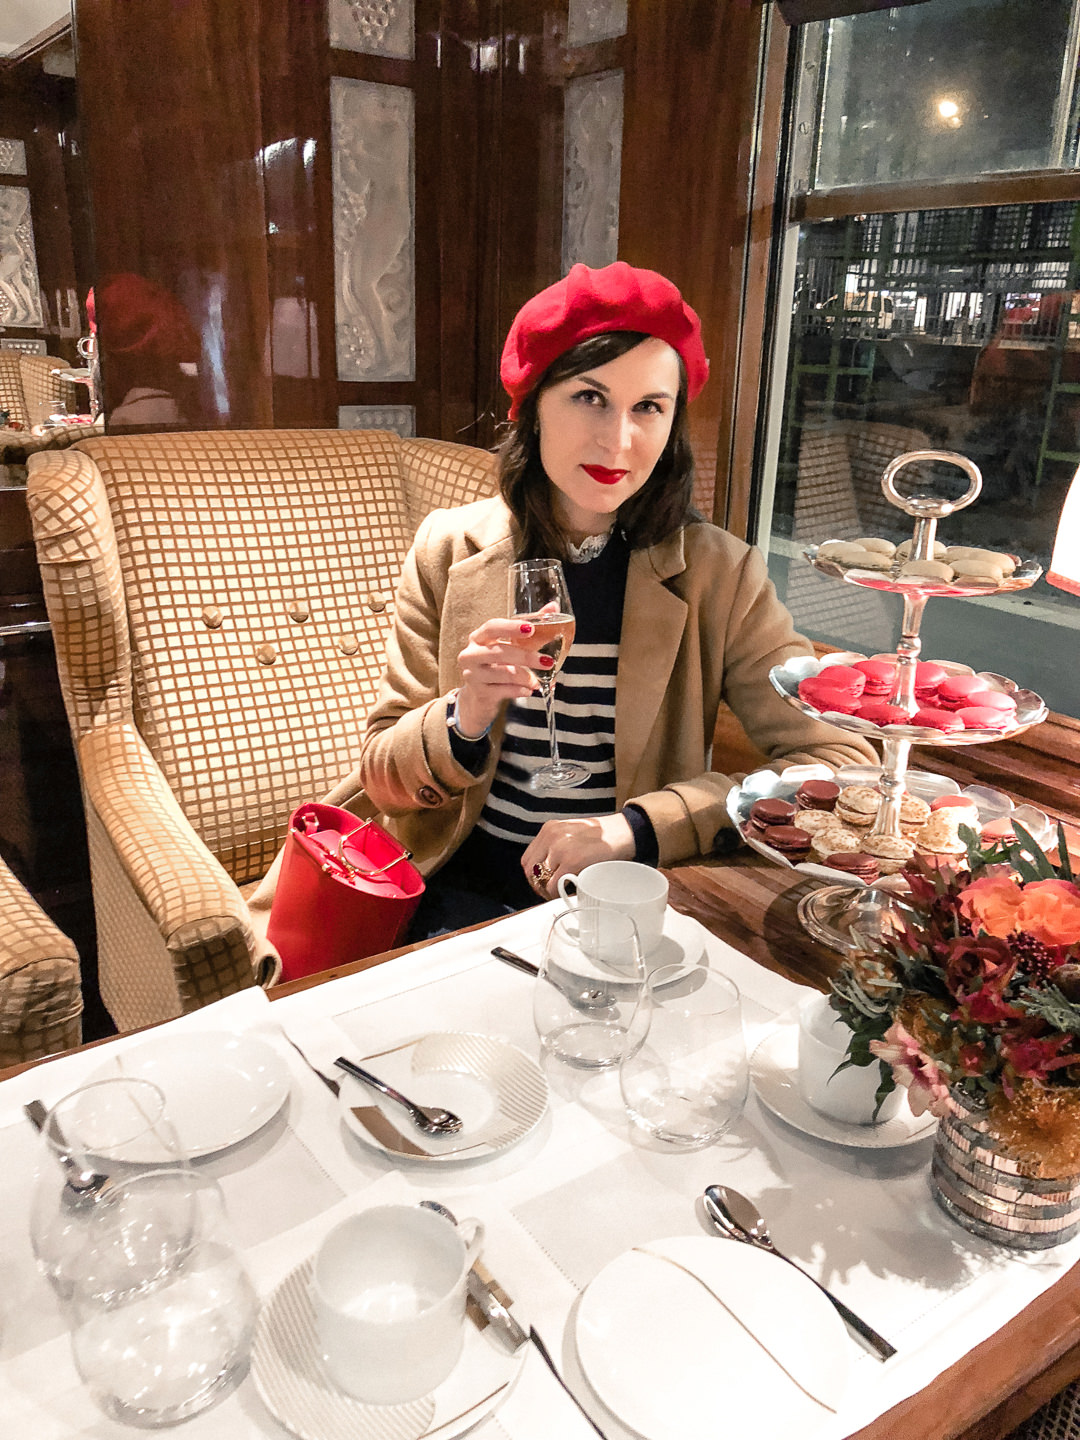 Blog-Mode-And-The-City-Lifestyle-Cinq-Petites-Choses-242-orient-express